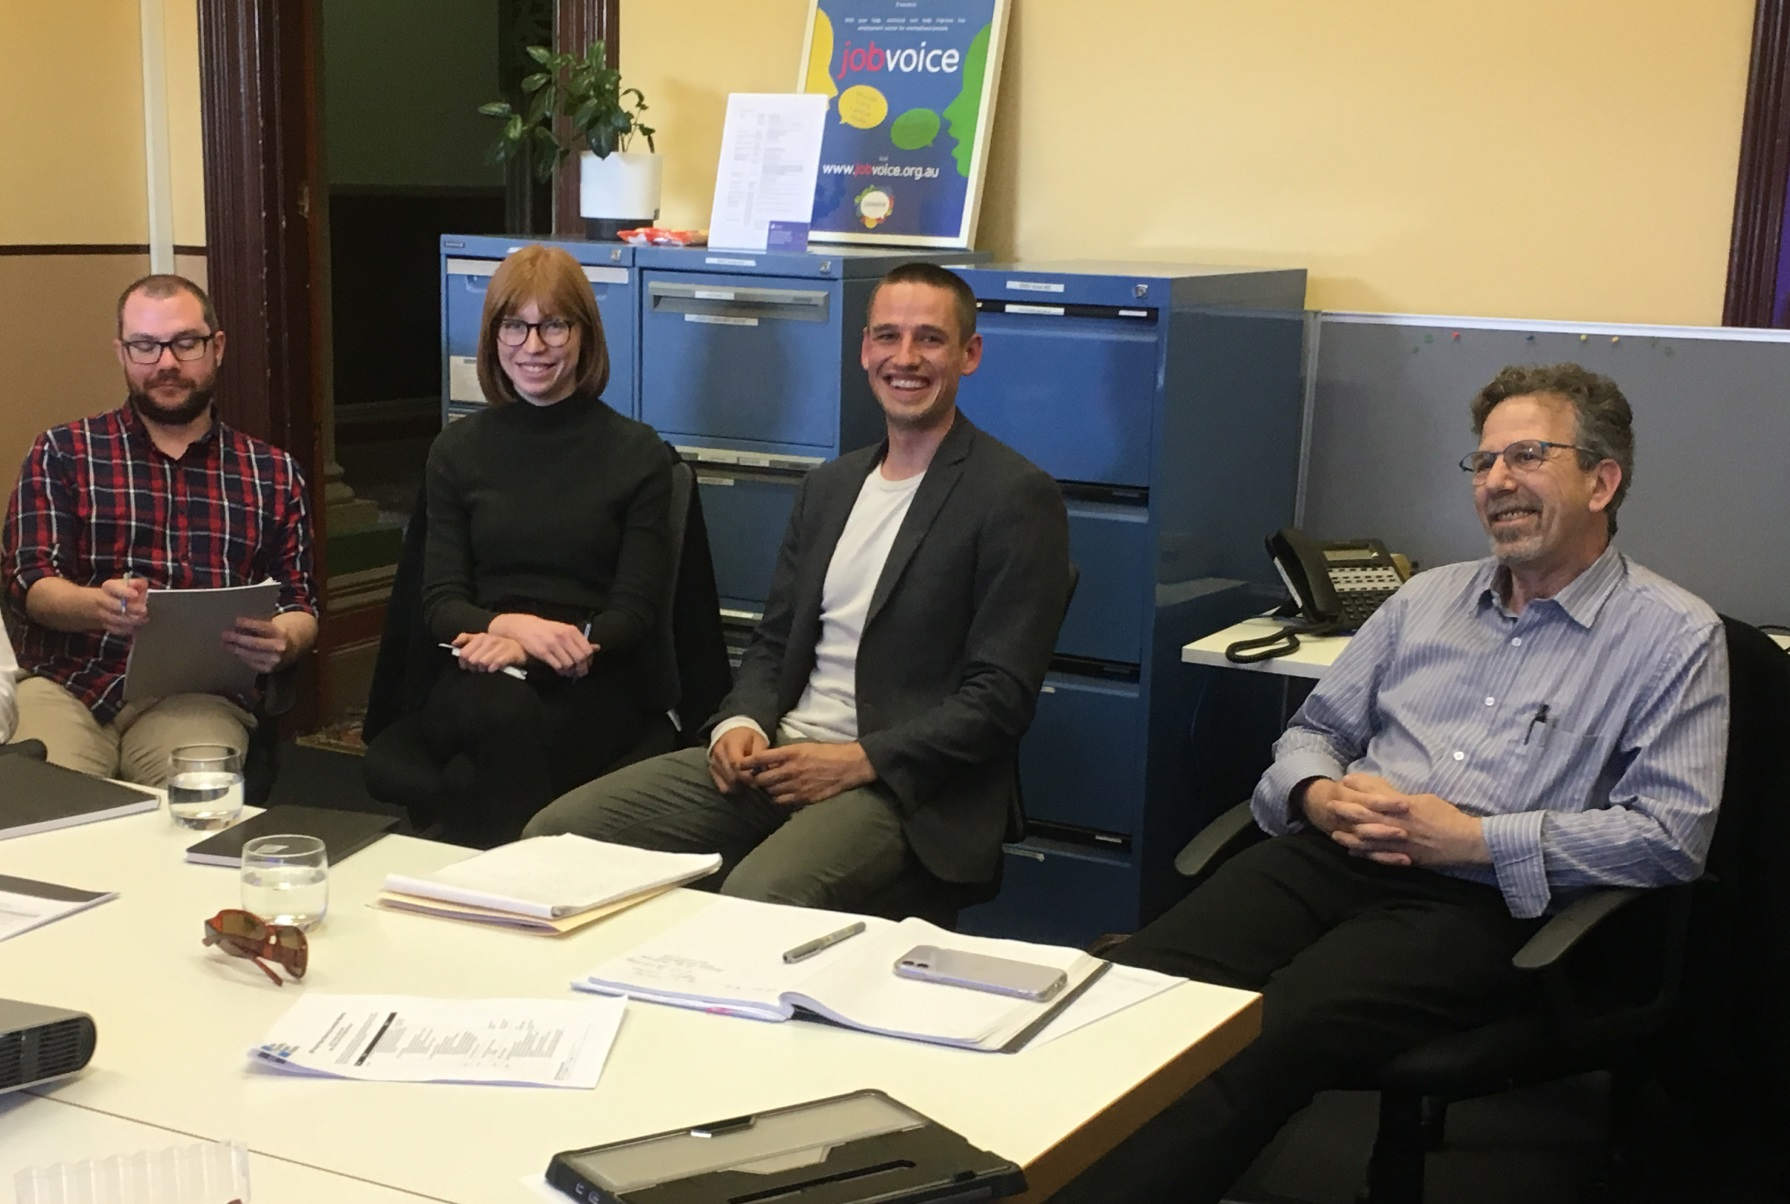 The DSP Help Steering Committee in action. From L-R: Dermott Williams (DSP Help community lawyer), Hannah Mitchell (Paper Giant), Bryn Overend (SSRV), and Len Jaffit (Victoria Legal Aid)